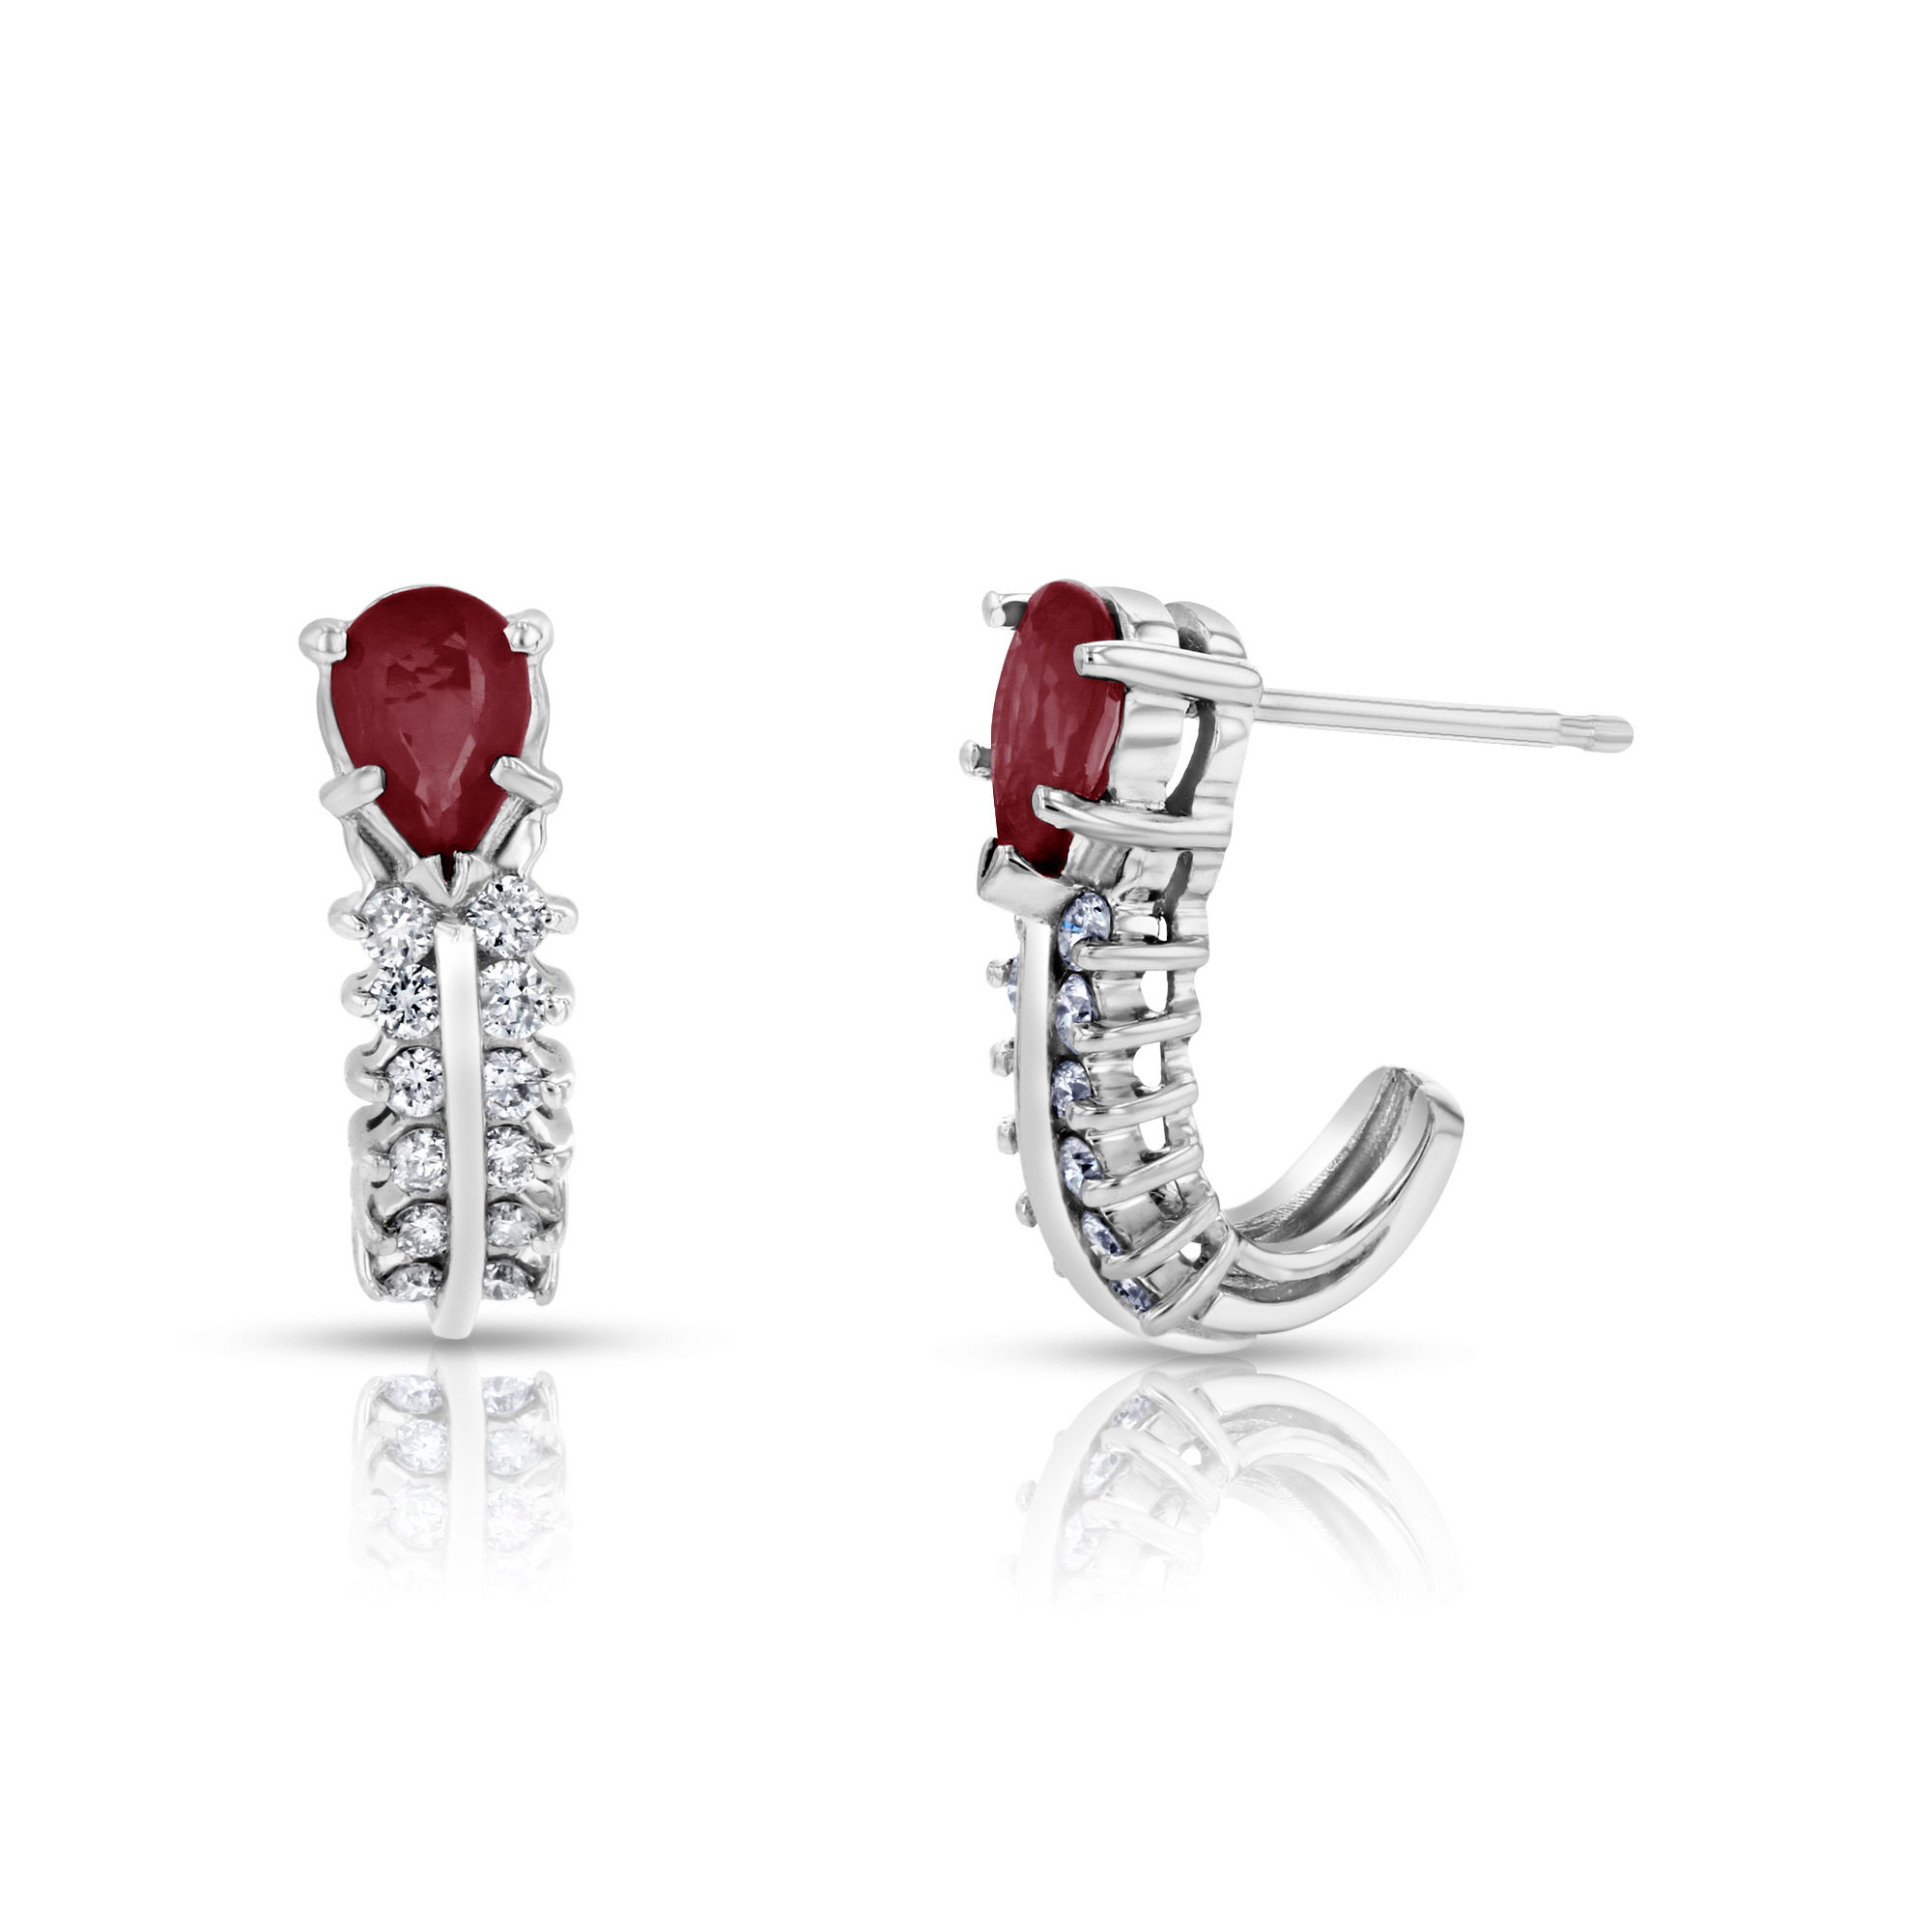 View 0.30ctw Diamonds and Ruby Earrings in 14k White Gold